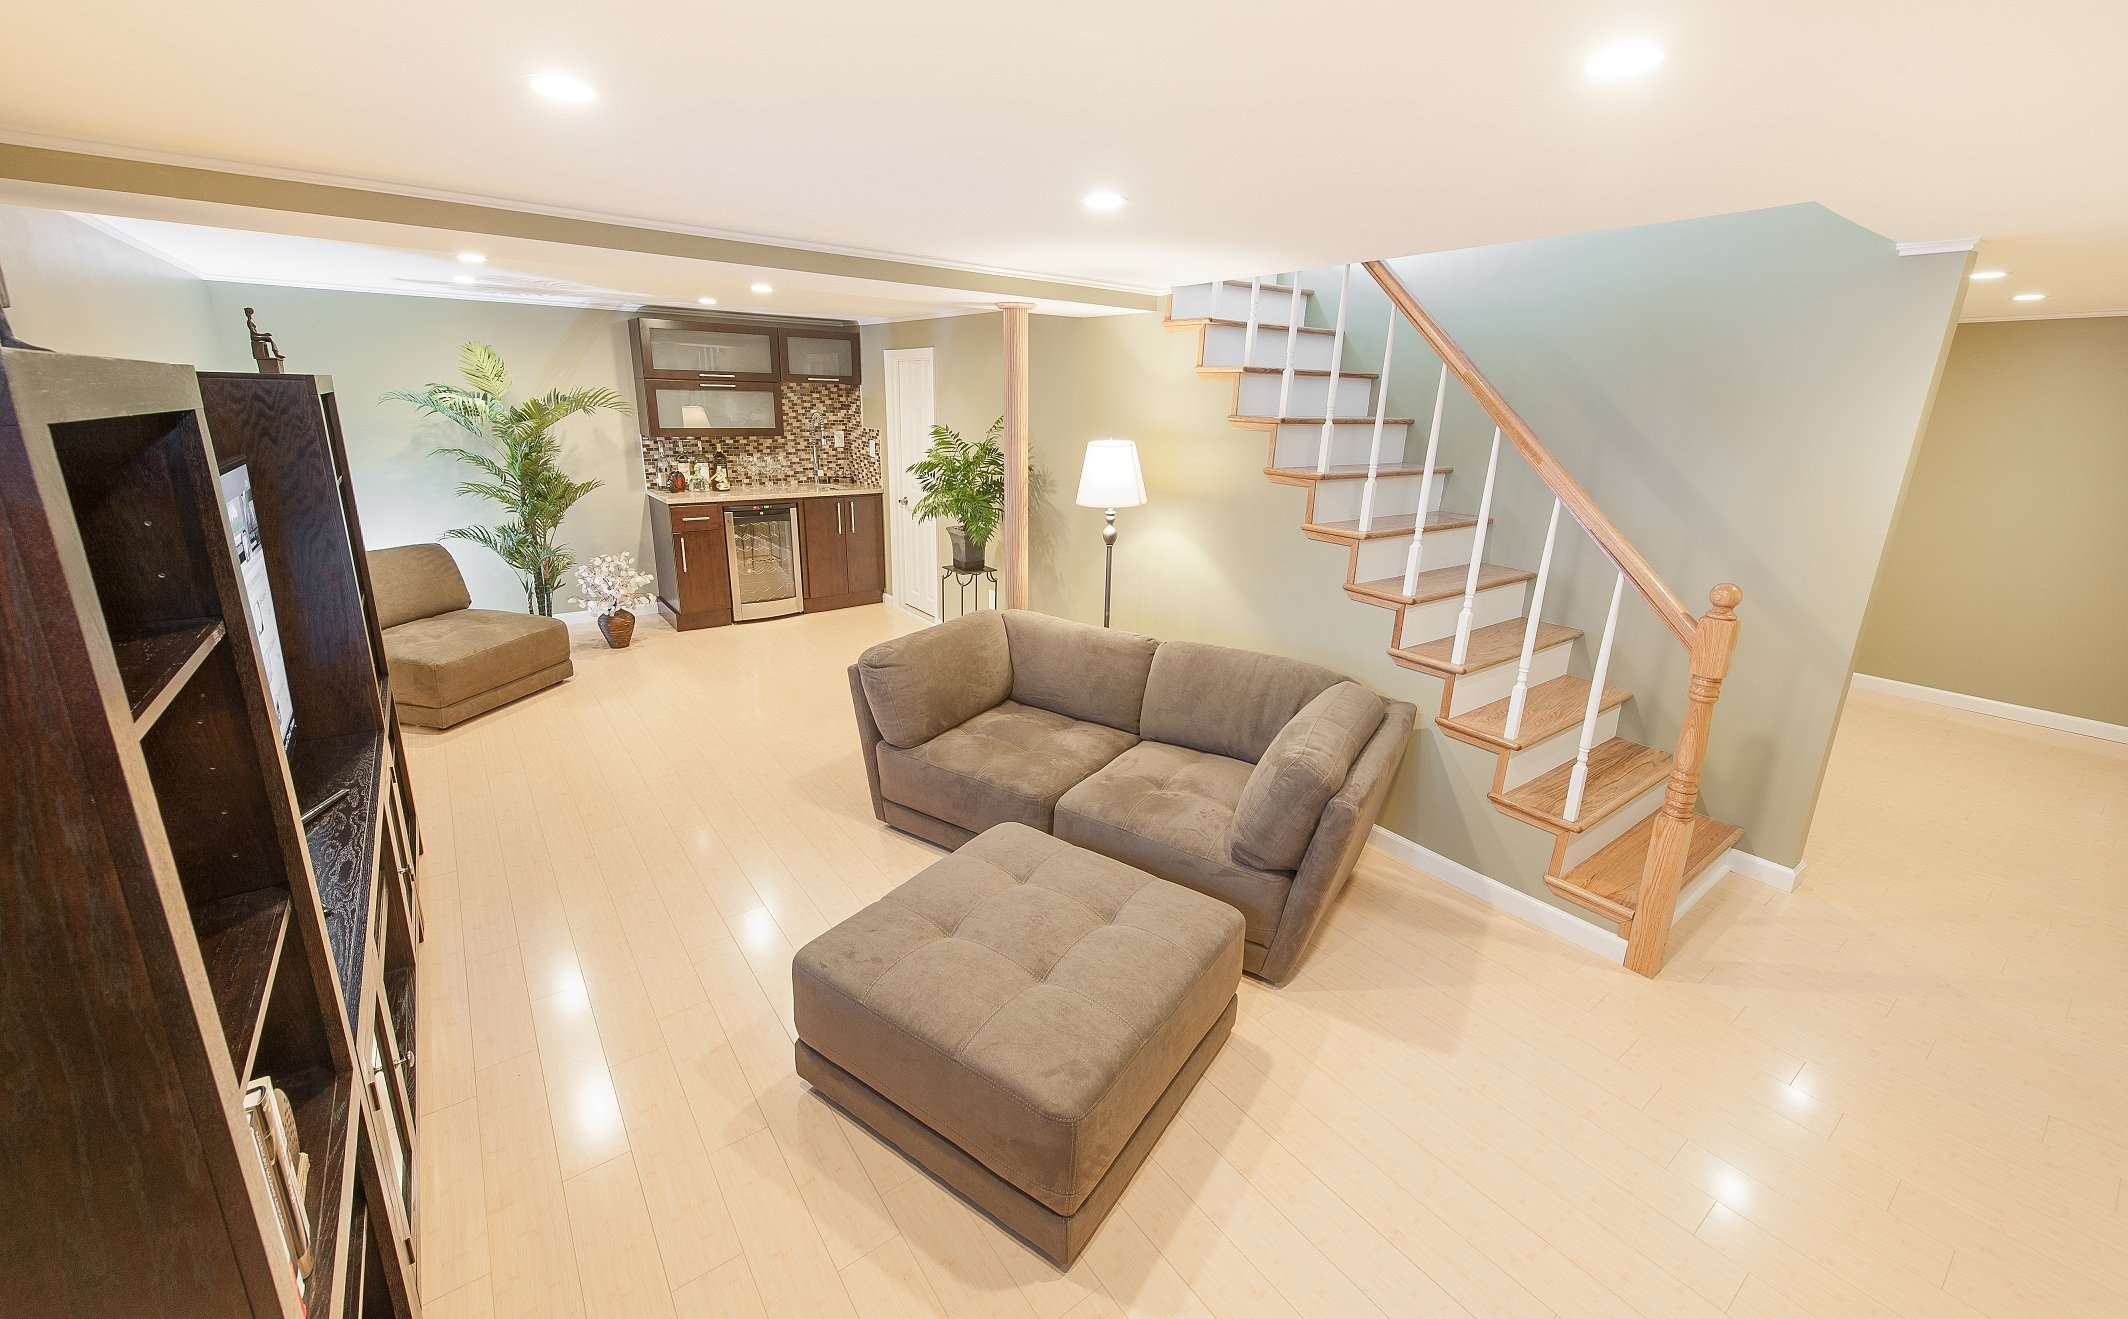 Laminate Flooring For Basement a basement gym and workout room with a wood laminate flooring installed in nelson Basement Condensation Smart Choices For Basement Flooring